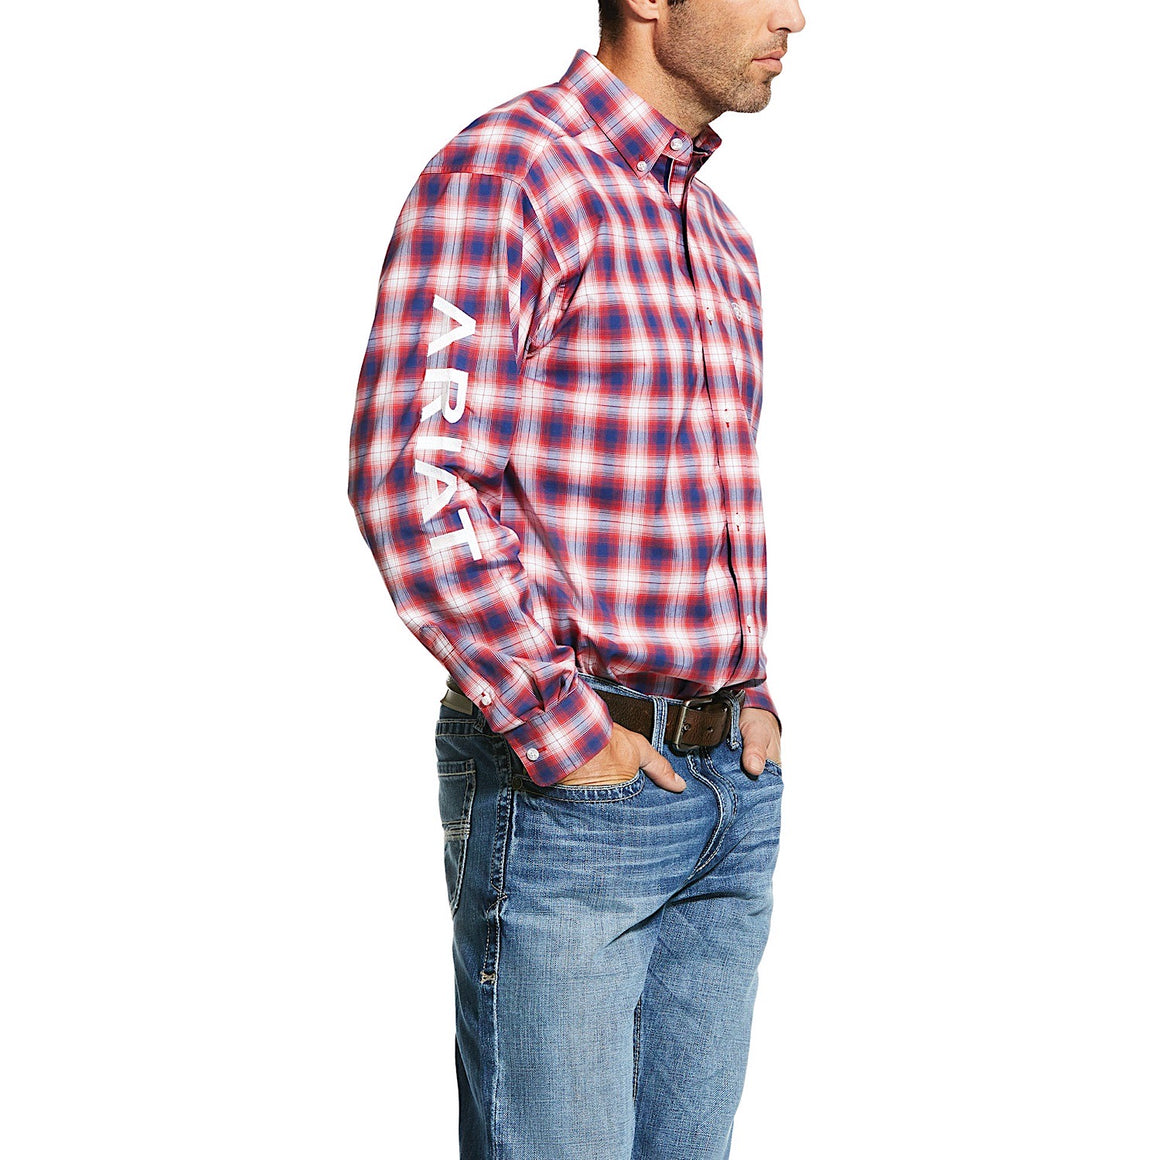 Ariat Mens Pro Series Caleb Classic Fit Shirt Multi